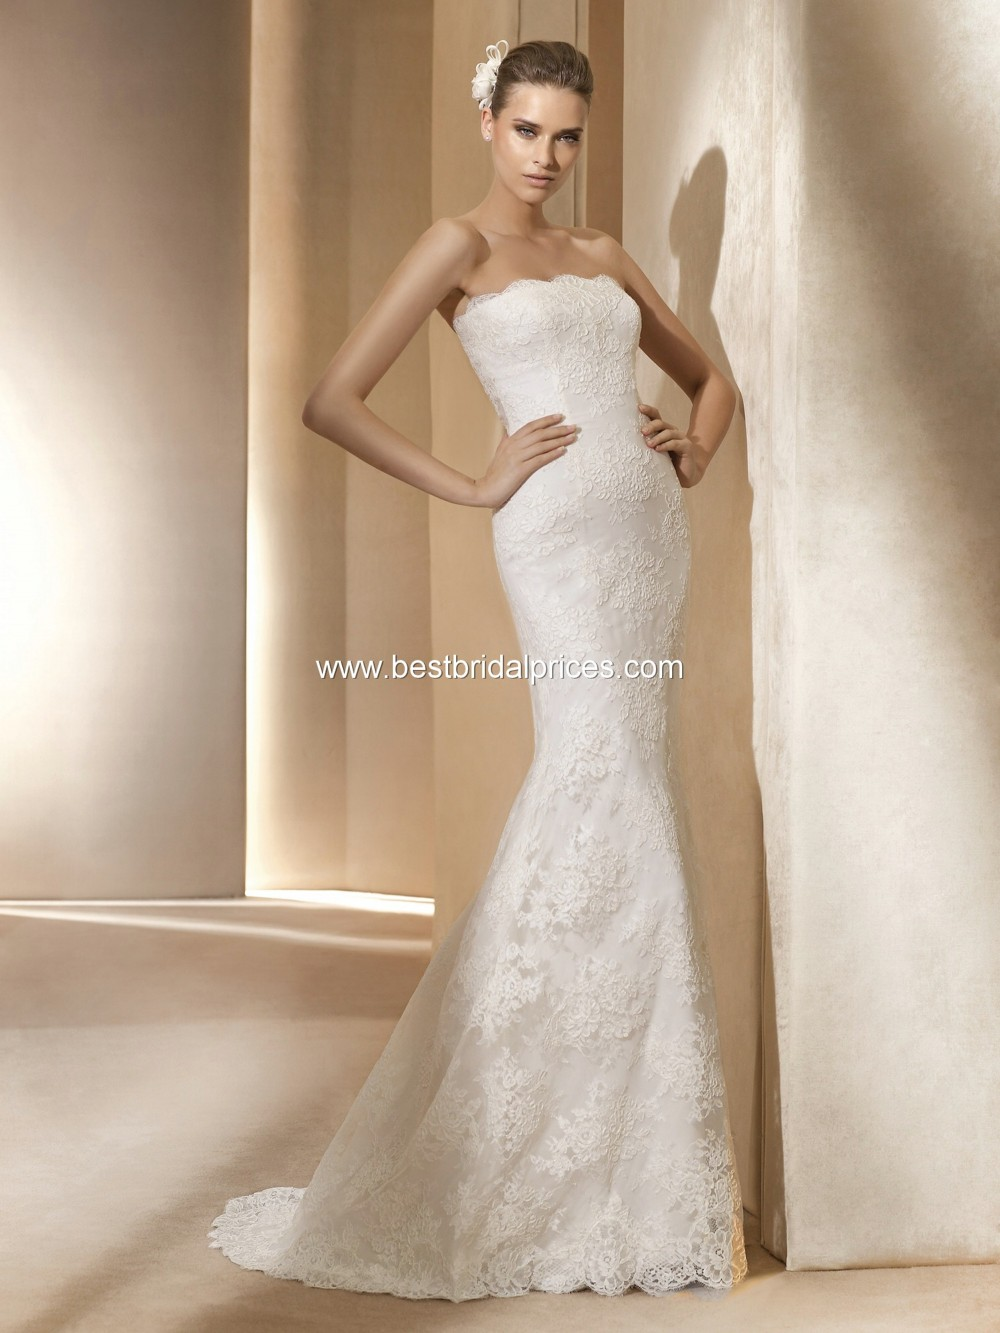 Pronovias adonis second hand wedding dress on sale 35 off for Second hand wedding dresses for sale